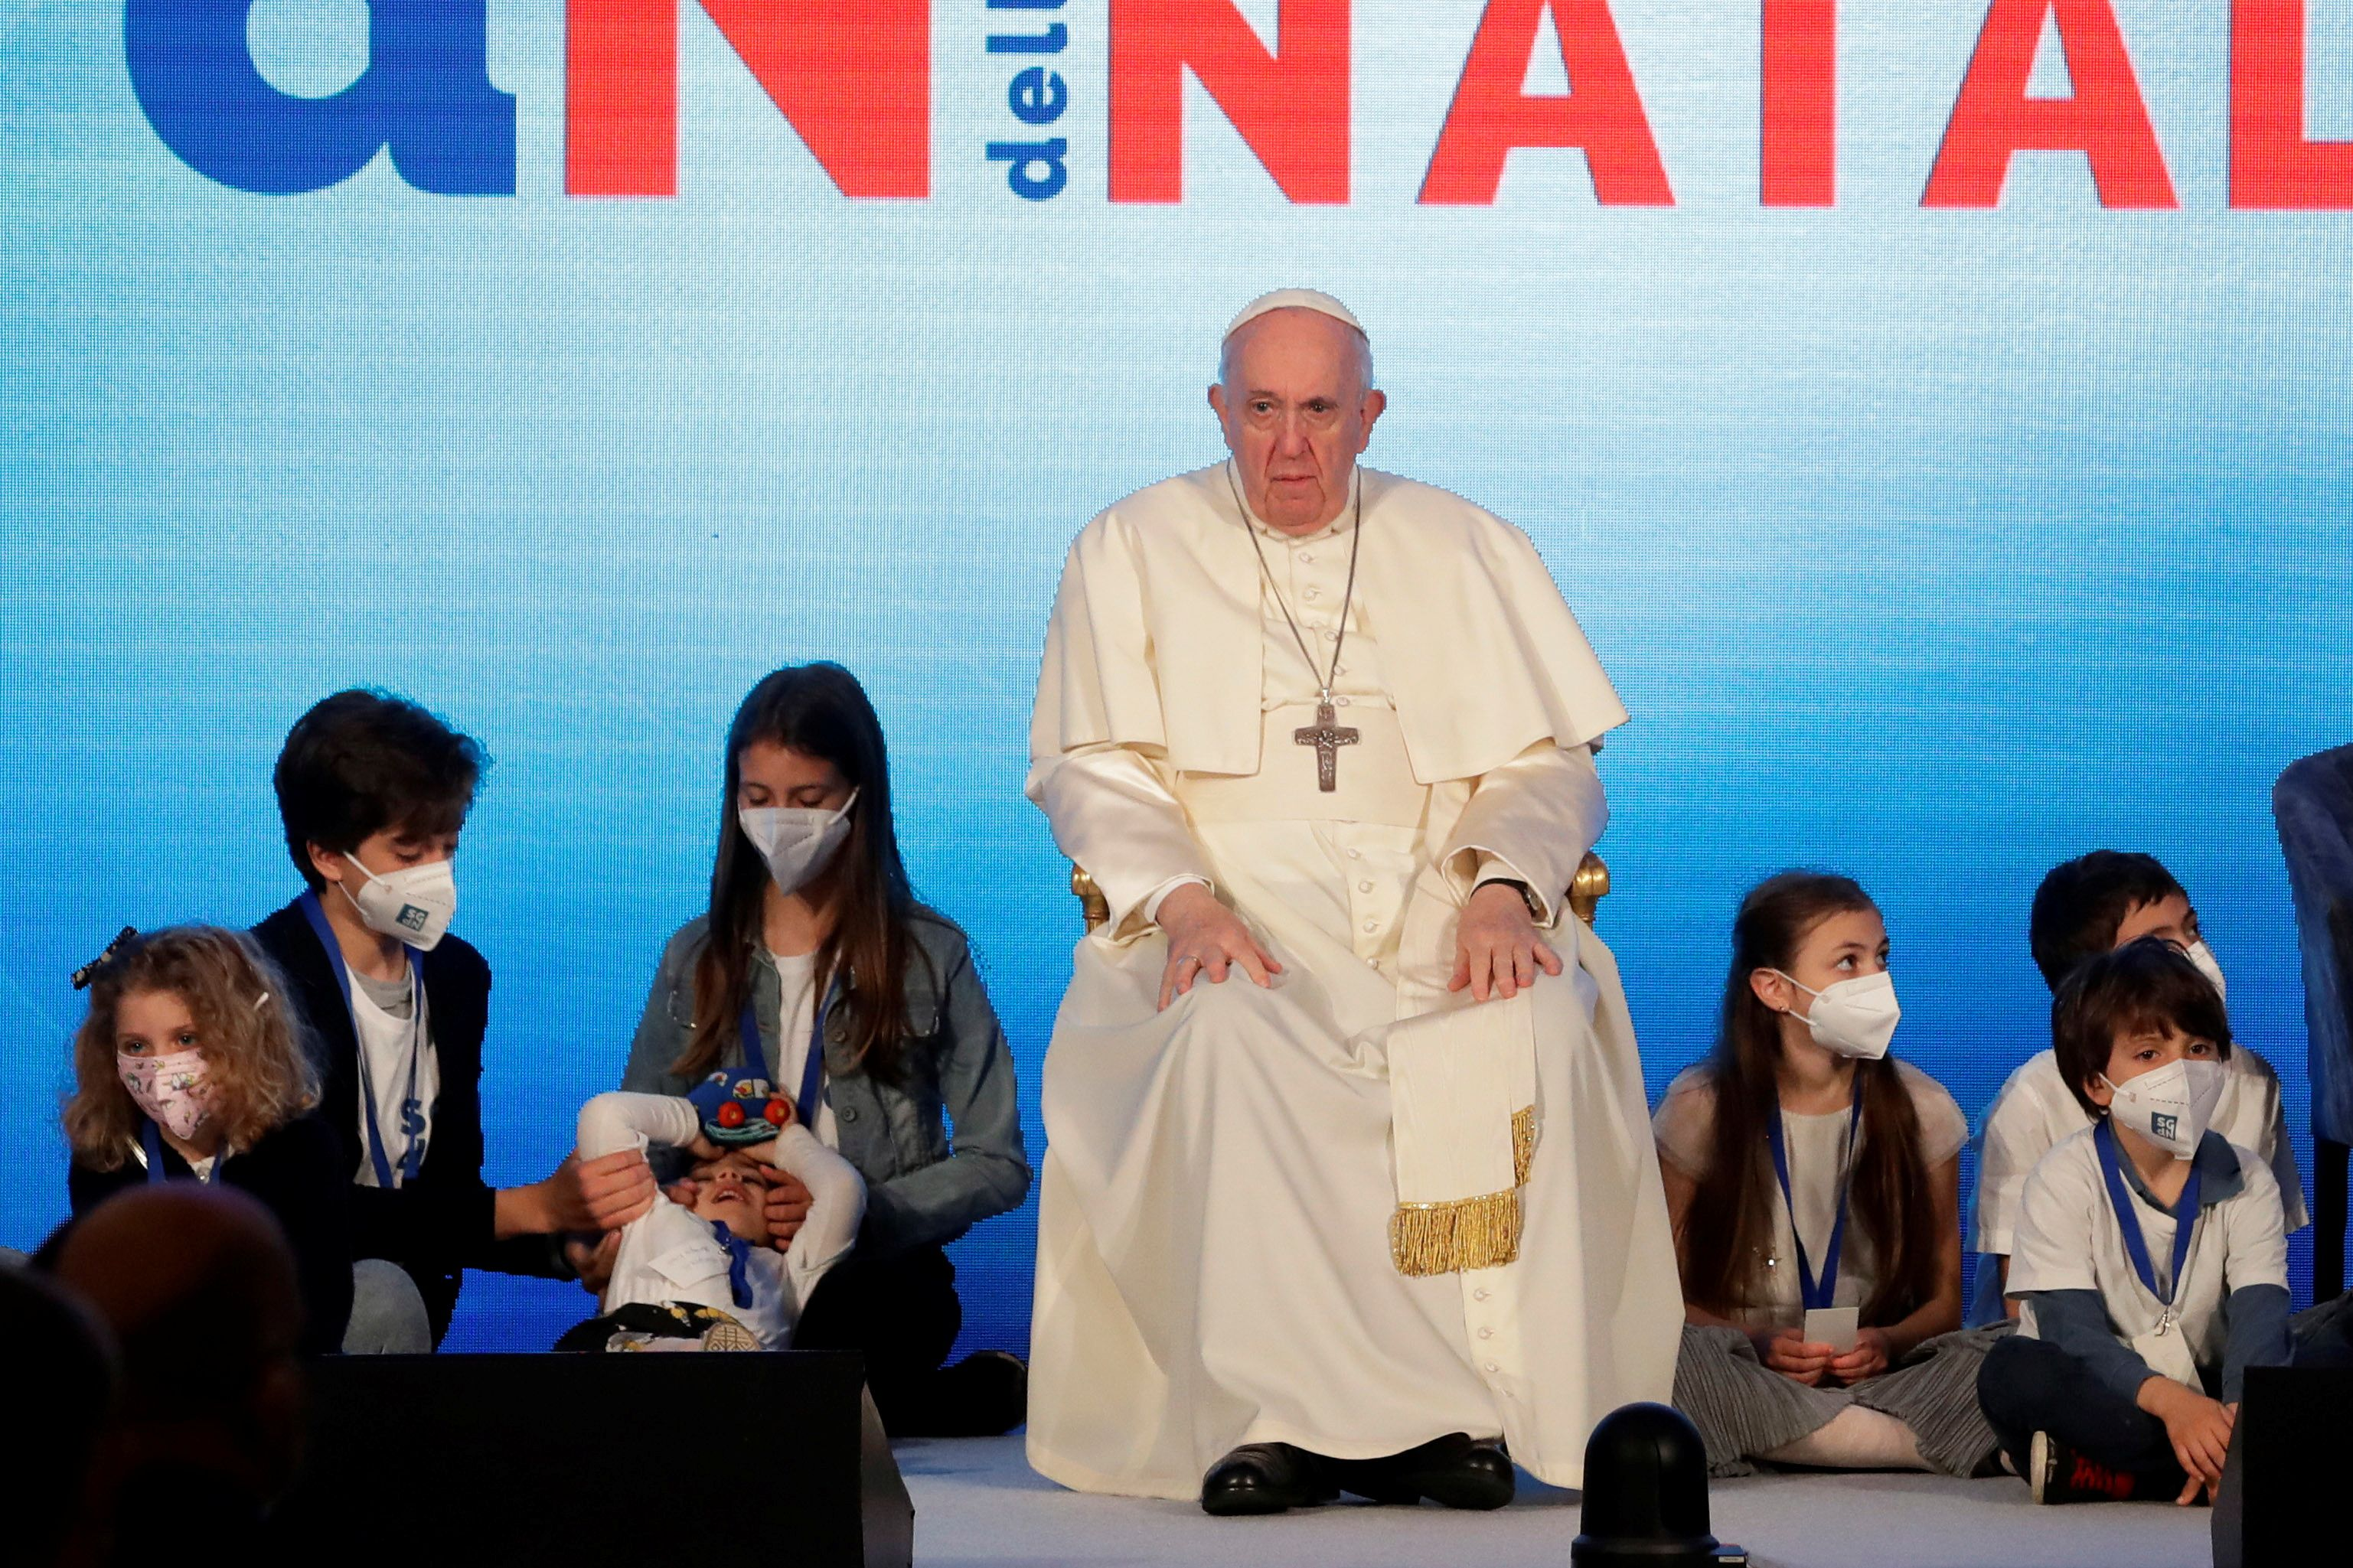 Pope Francis attends a conference on the Demographic Crisis in Rome, Italy May 14, 2021. Andrew Medichini/Pool via REUTERS